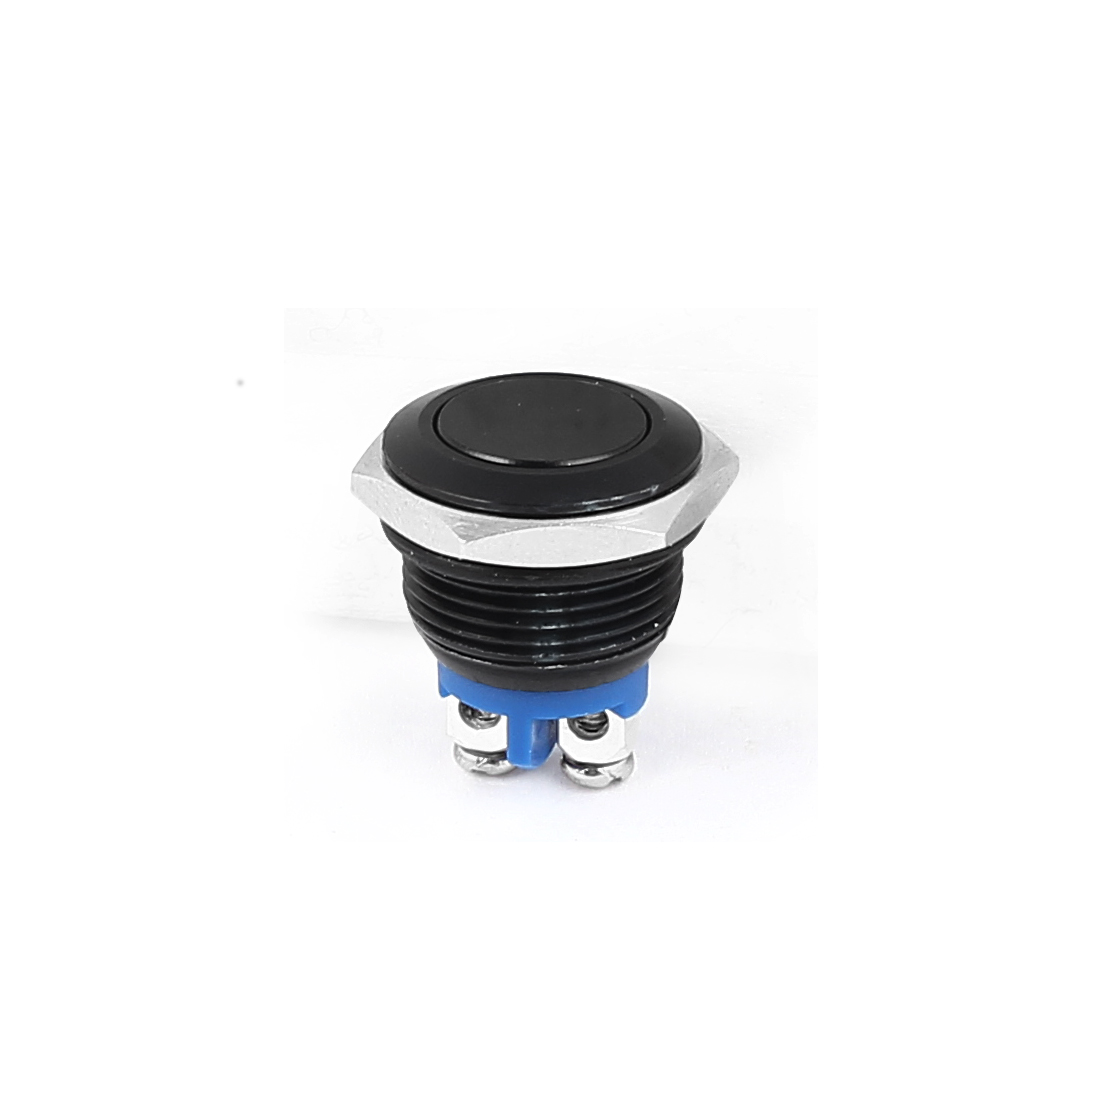 AC 250V 5A SPST Momentary NO Black Mini Push Button Switch